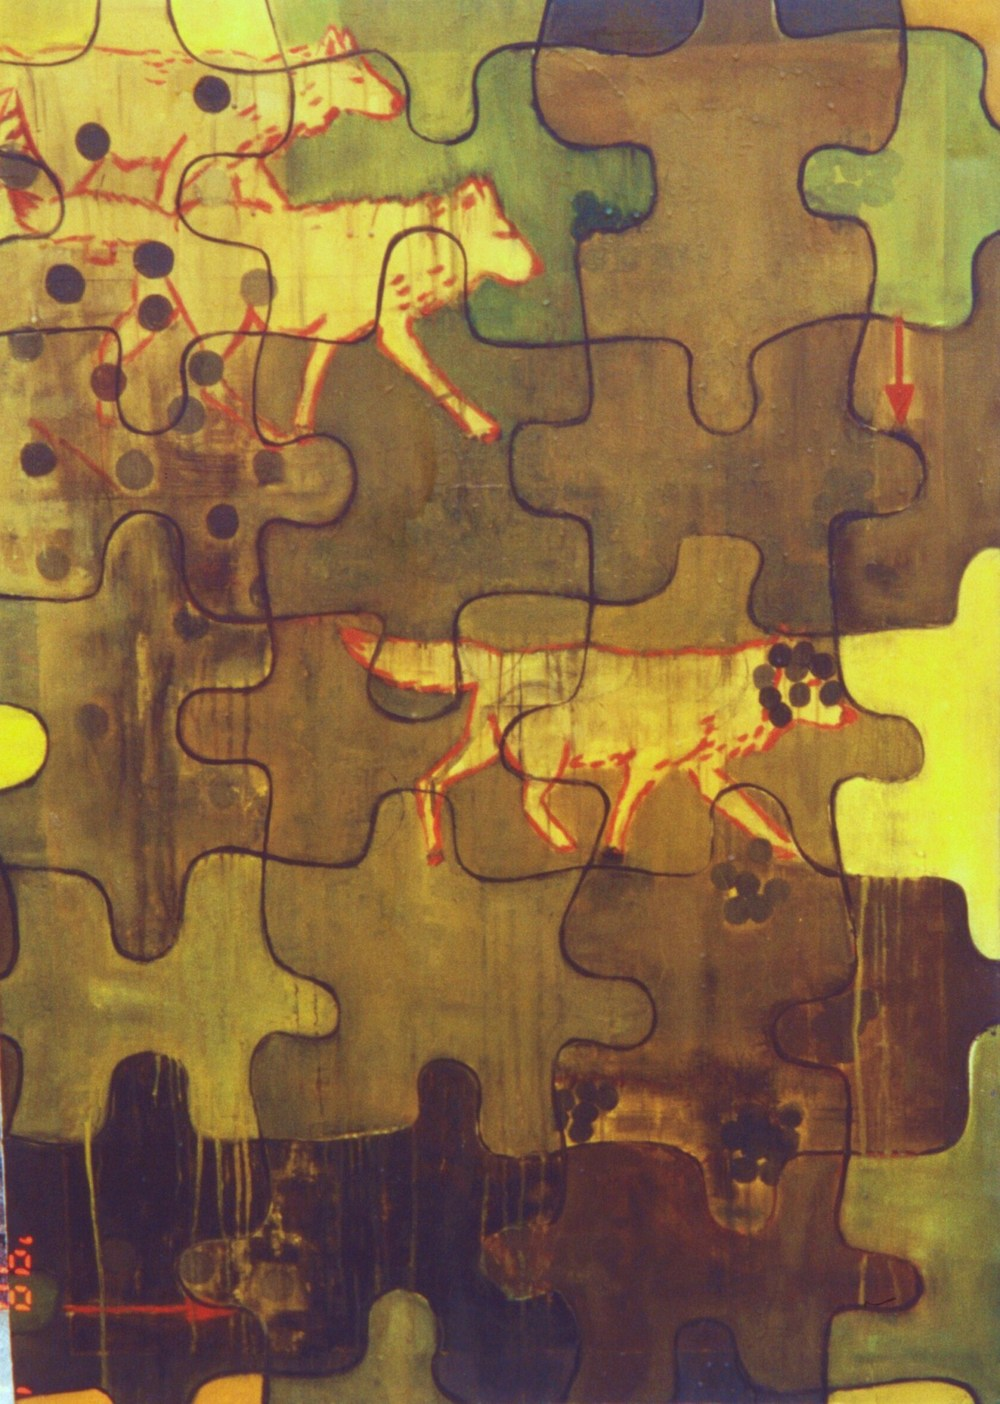 Puzzles: ecology and survival skills